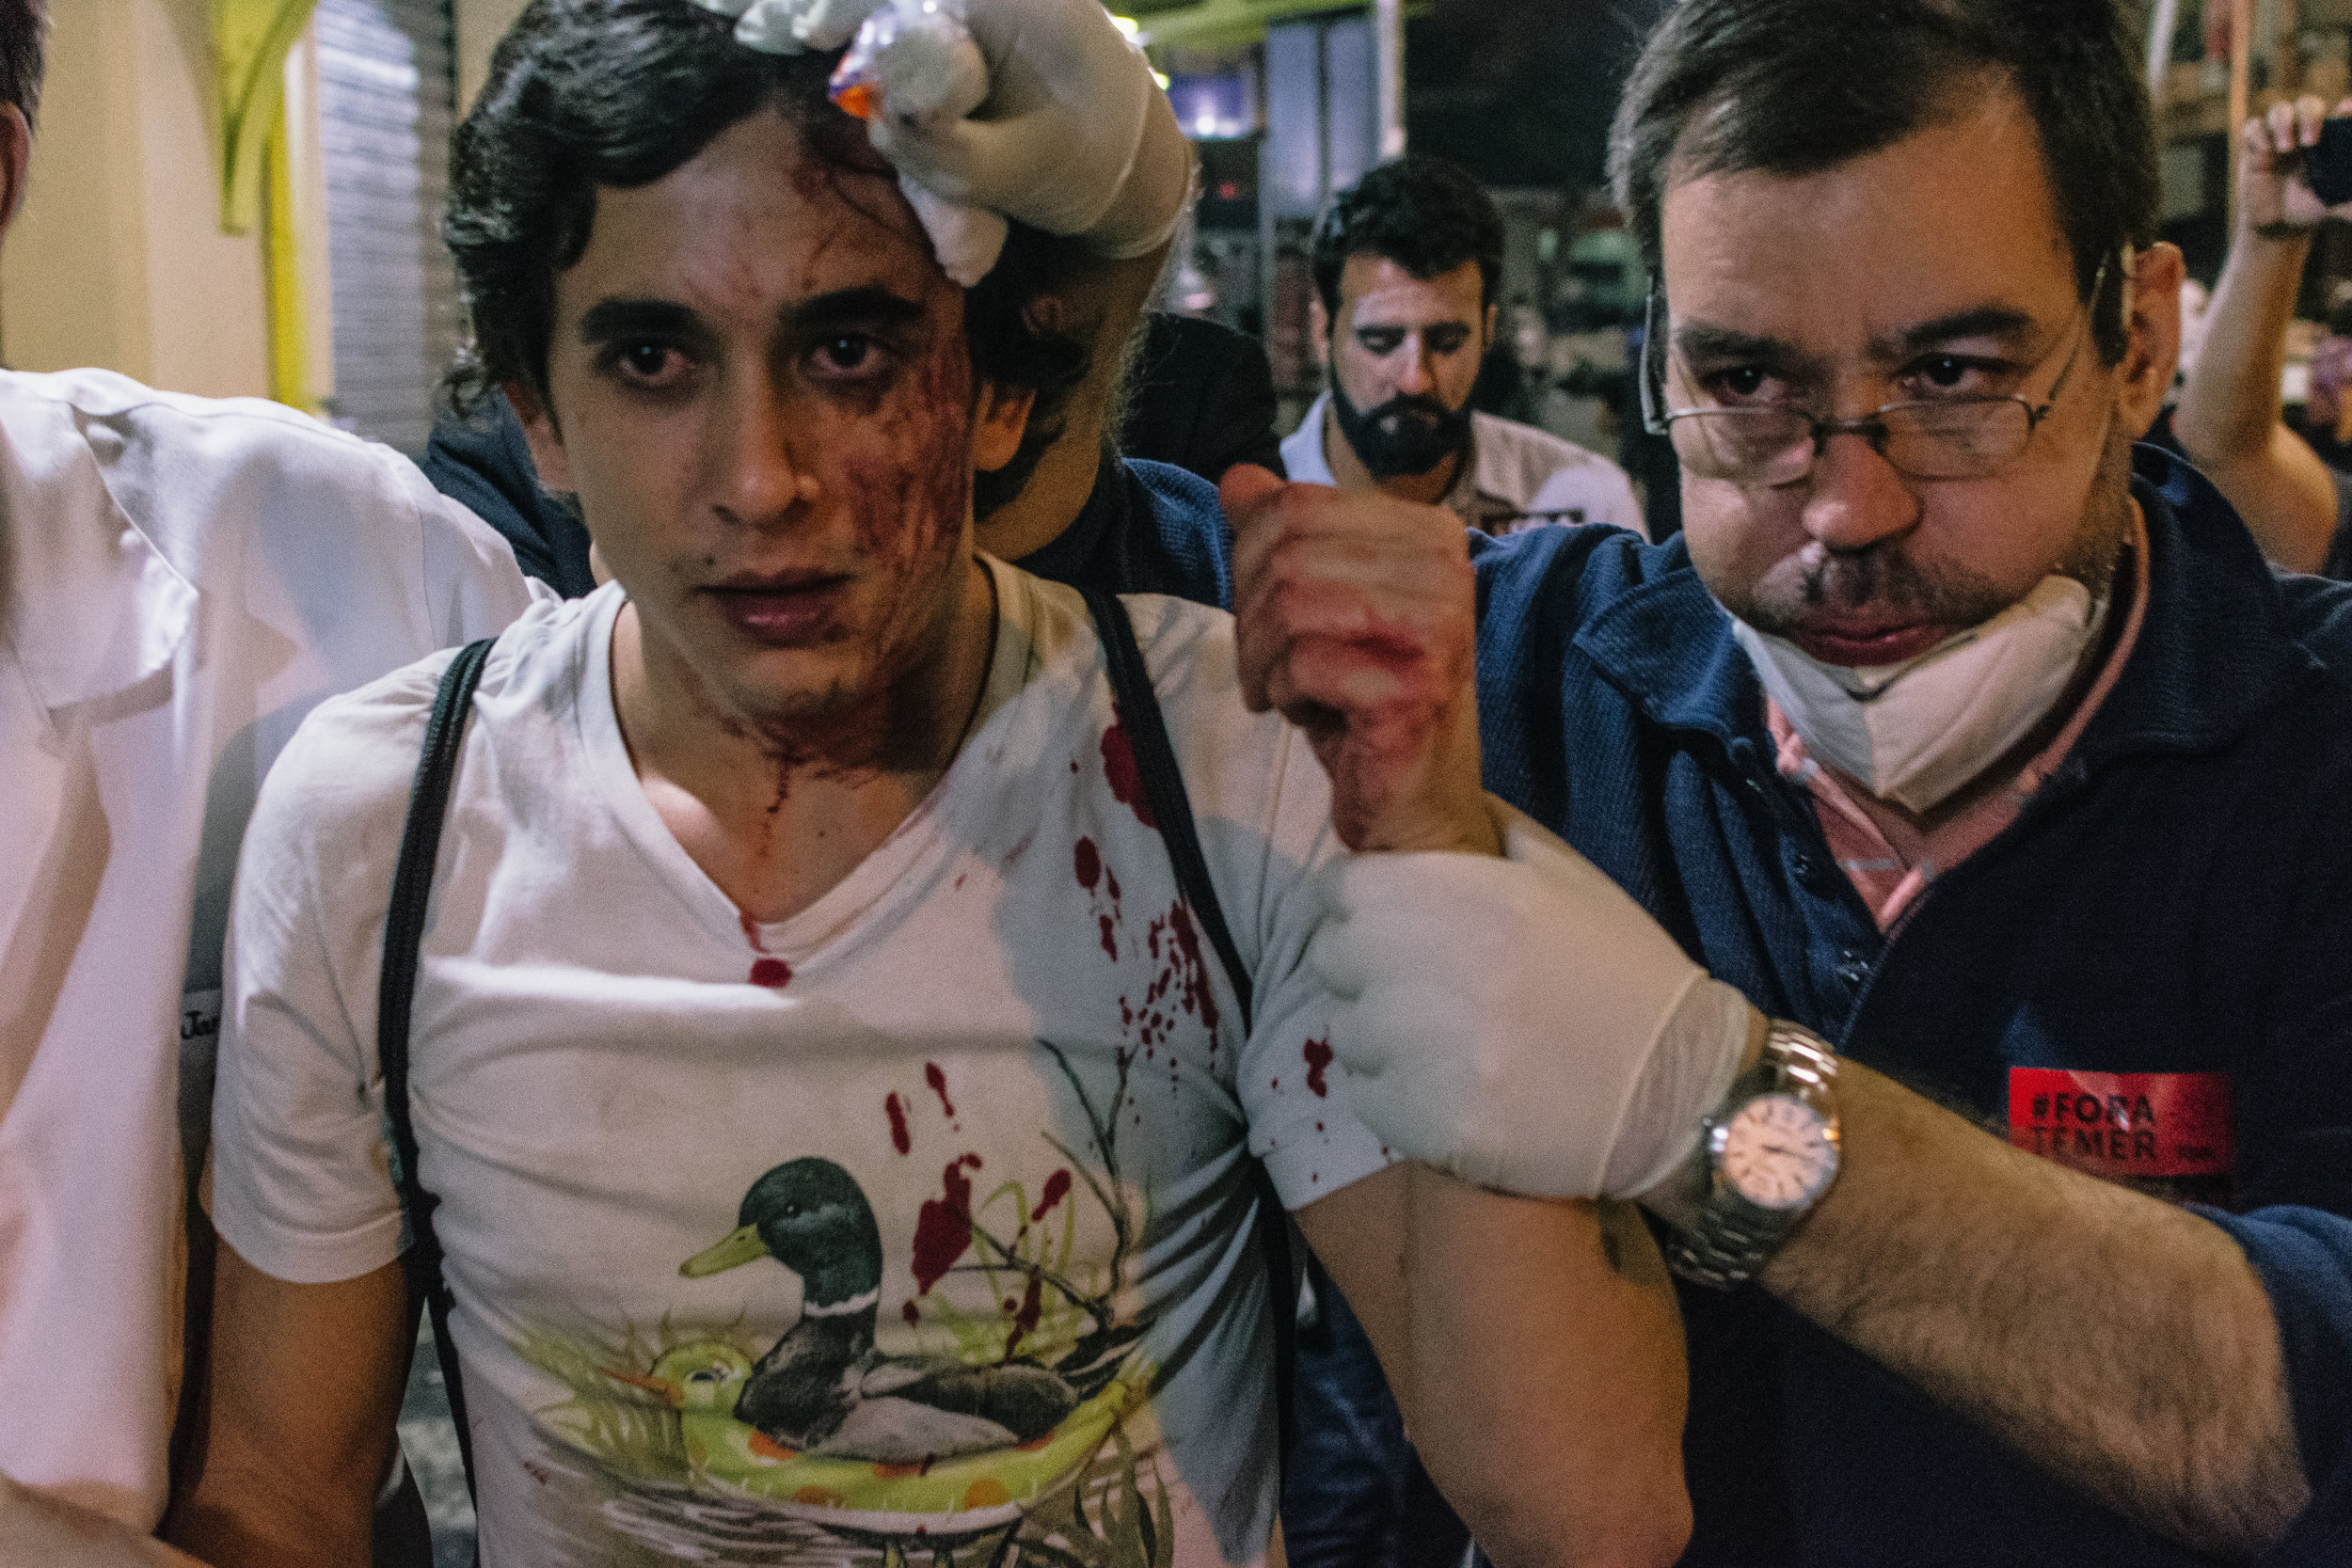 Volunteer medics lead a man injured during protests to an ad-hoc casualty collection area.